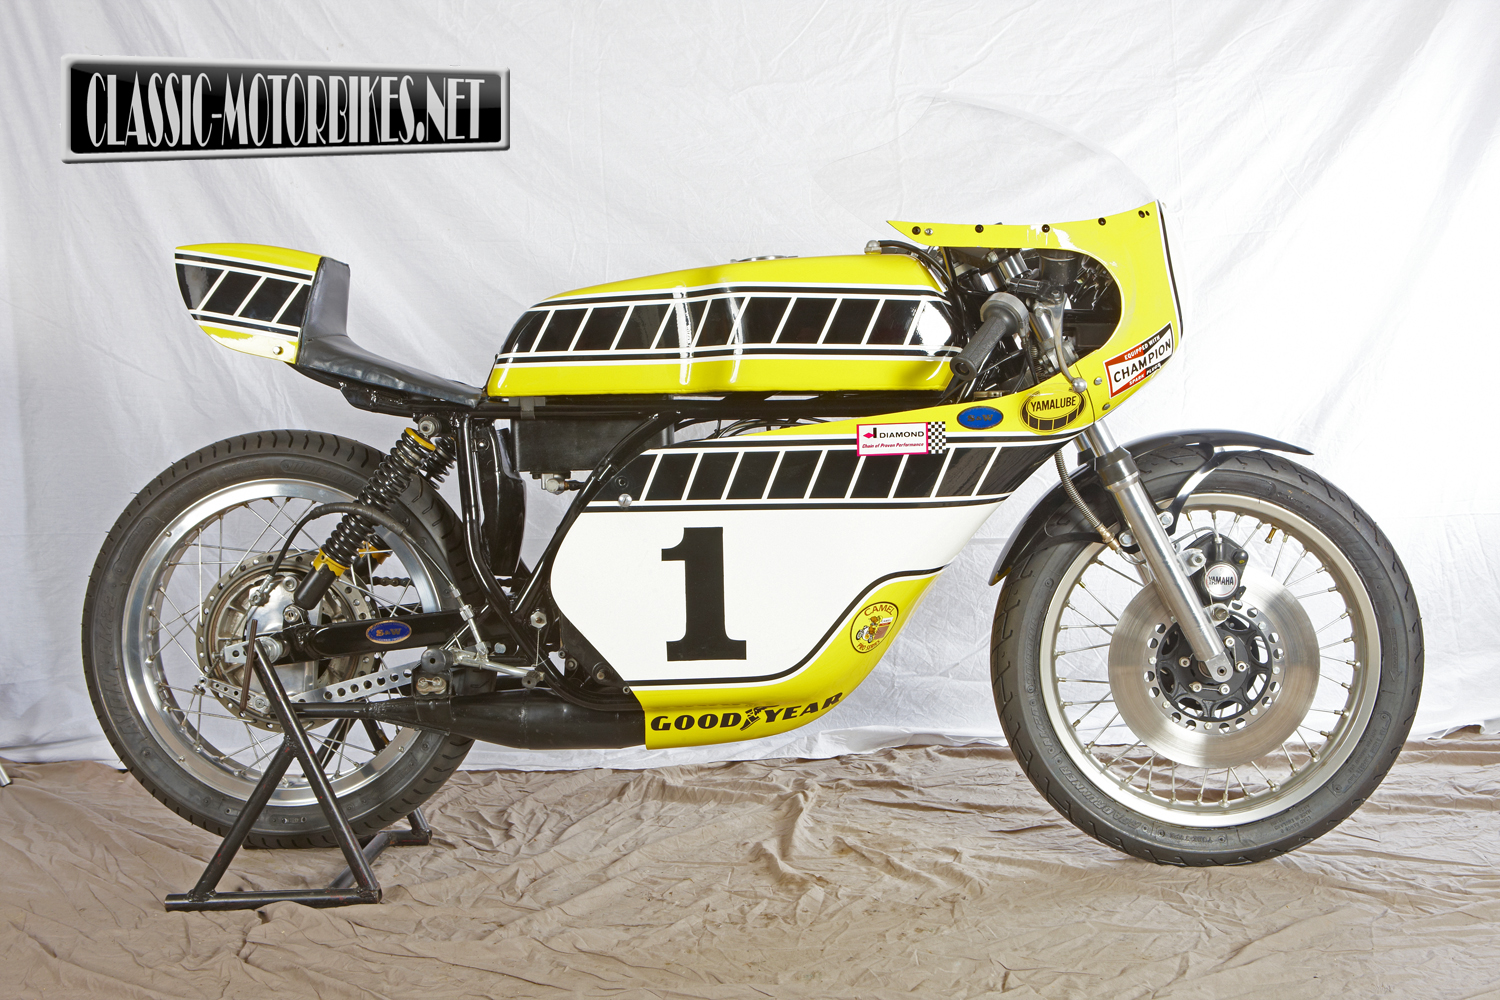 Yamaha RD 250 (reduced effect) 1981 #10